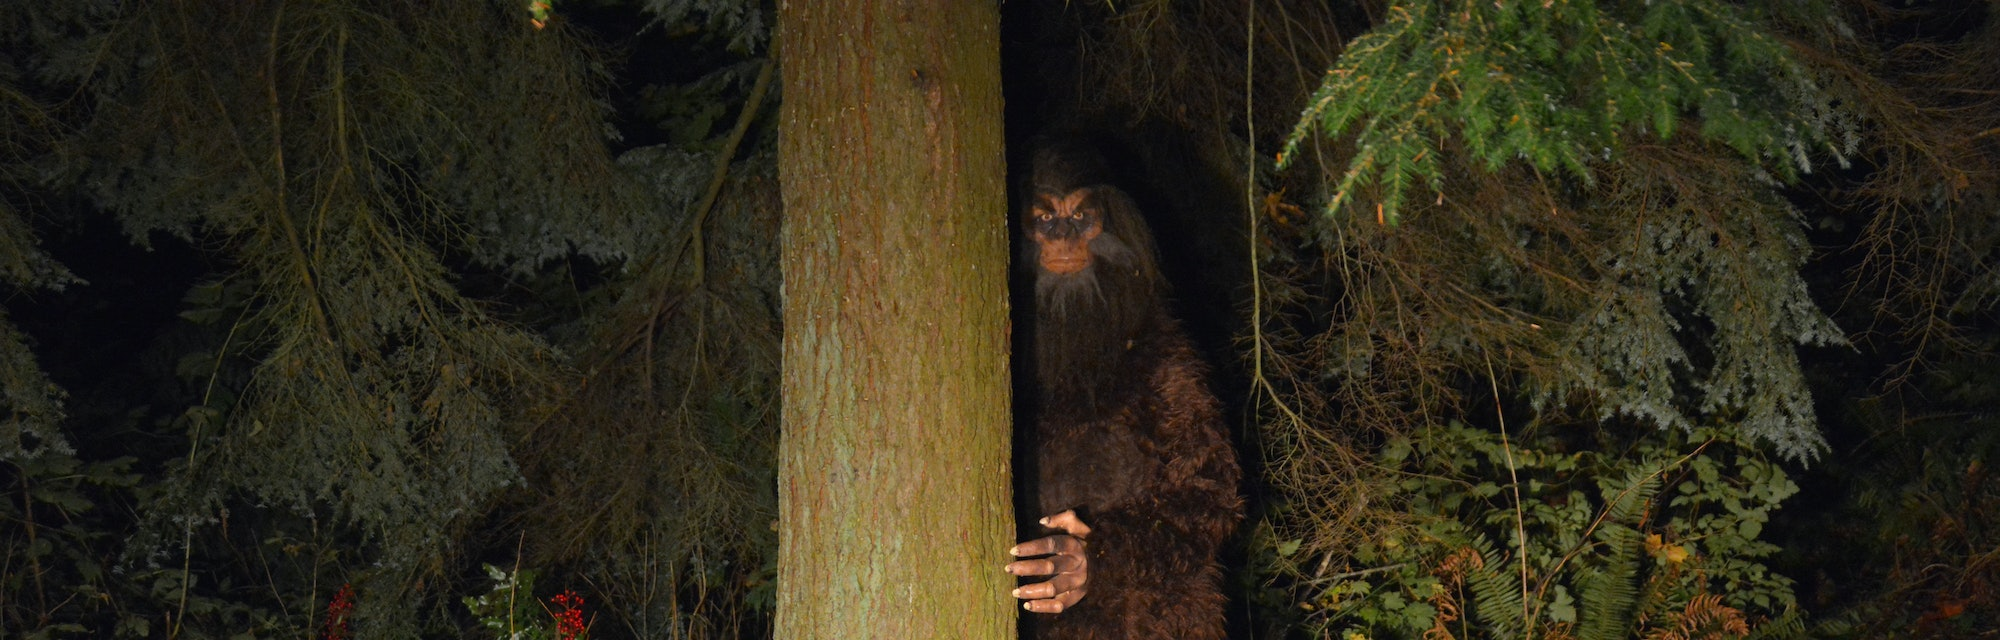 Sasquatch looks out from behind a tree in the forest.